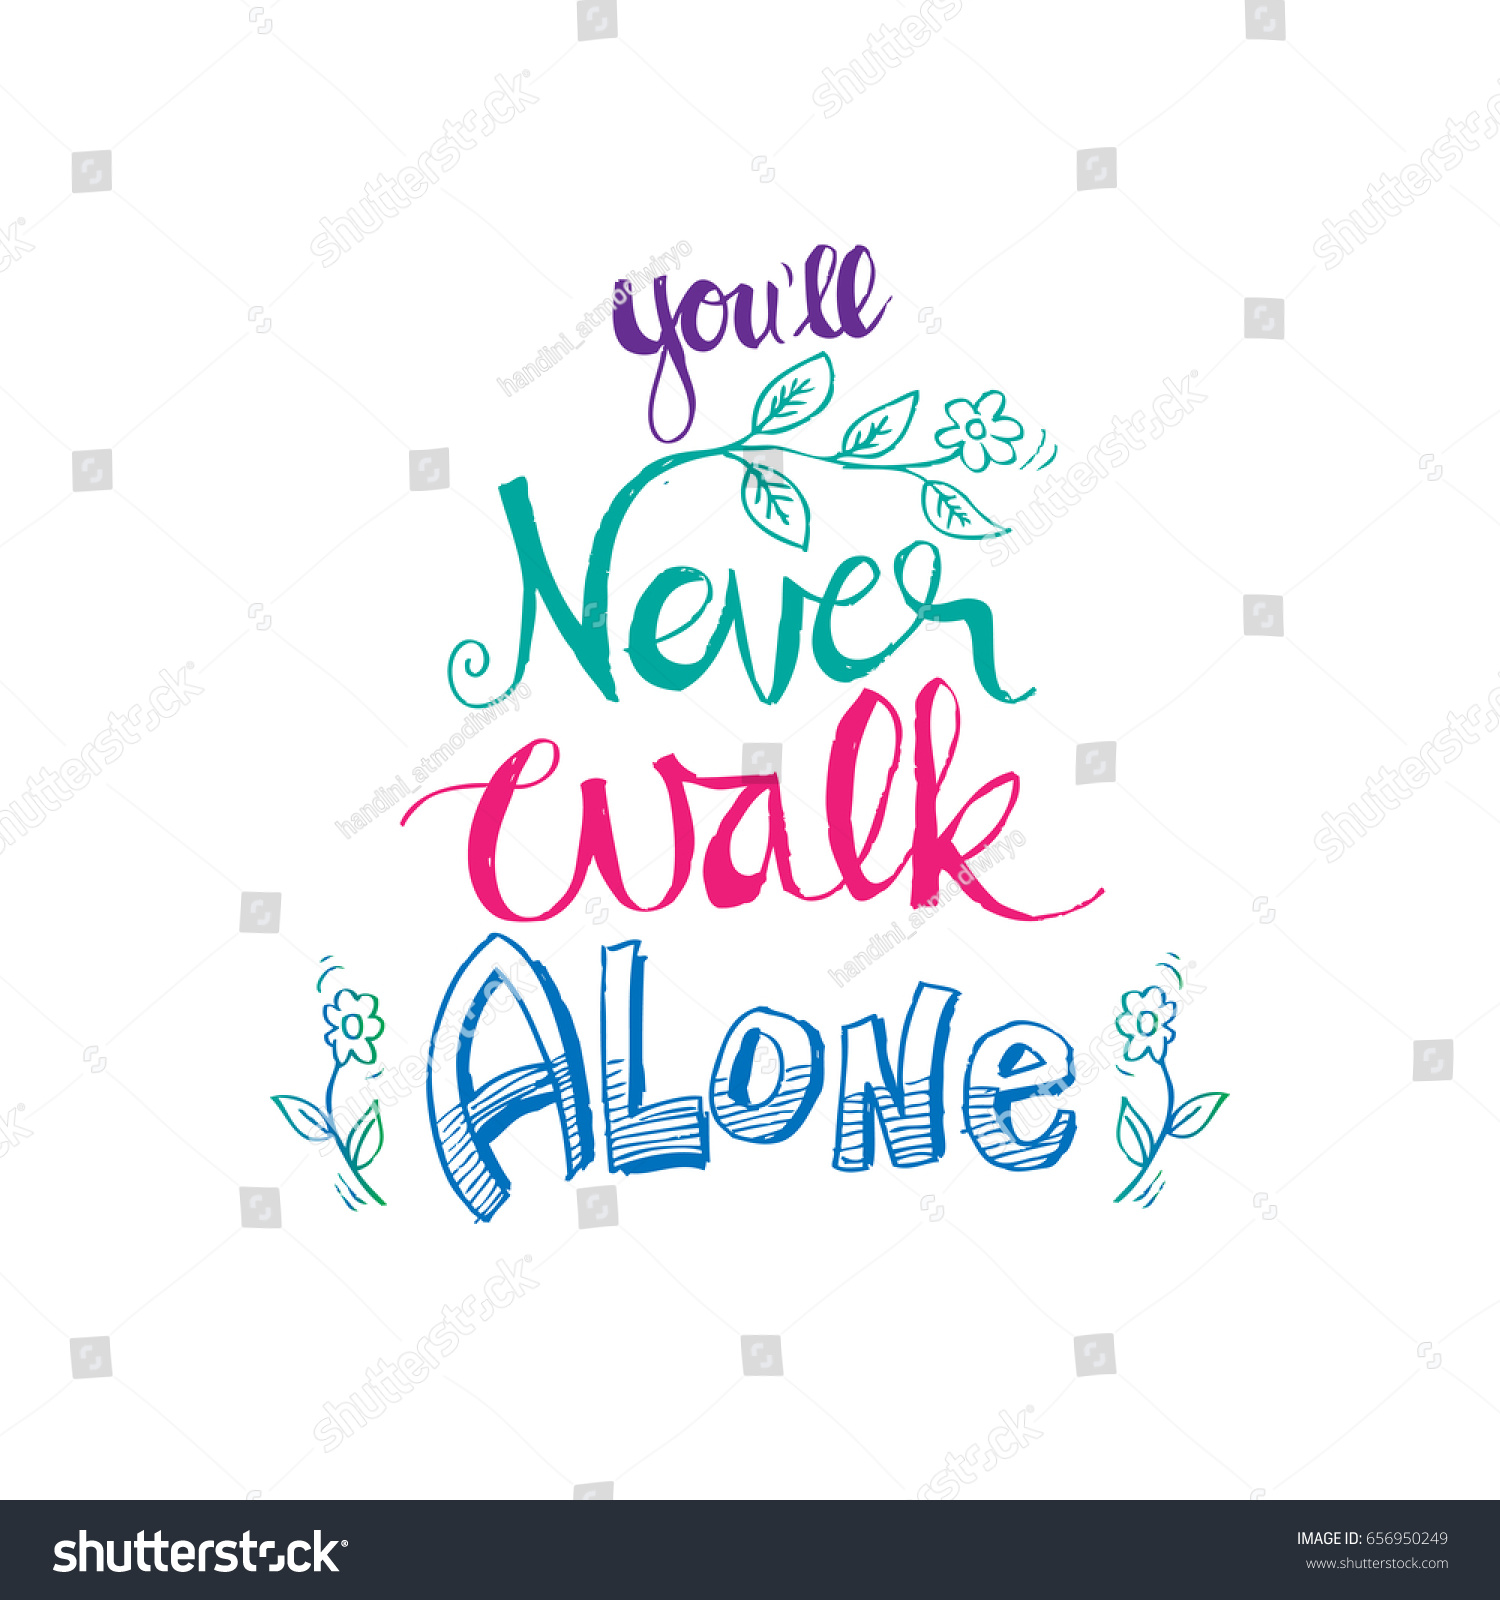 Youll Never Walk Alone Hand Lettering Stock Vector Royalty Free